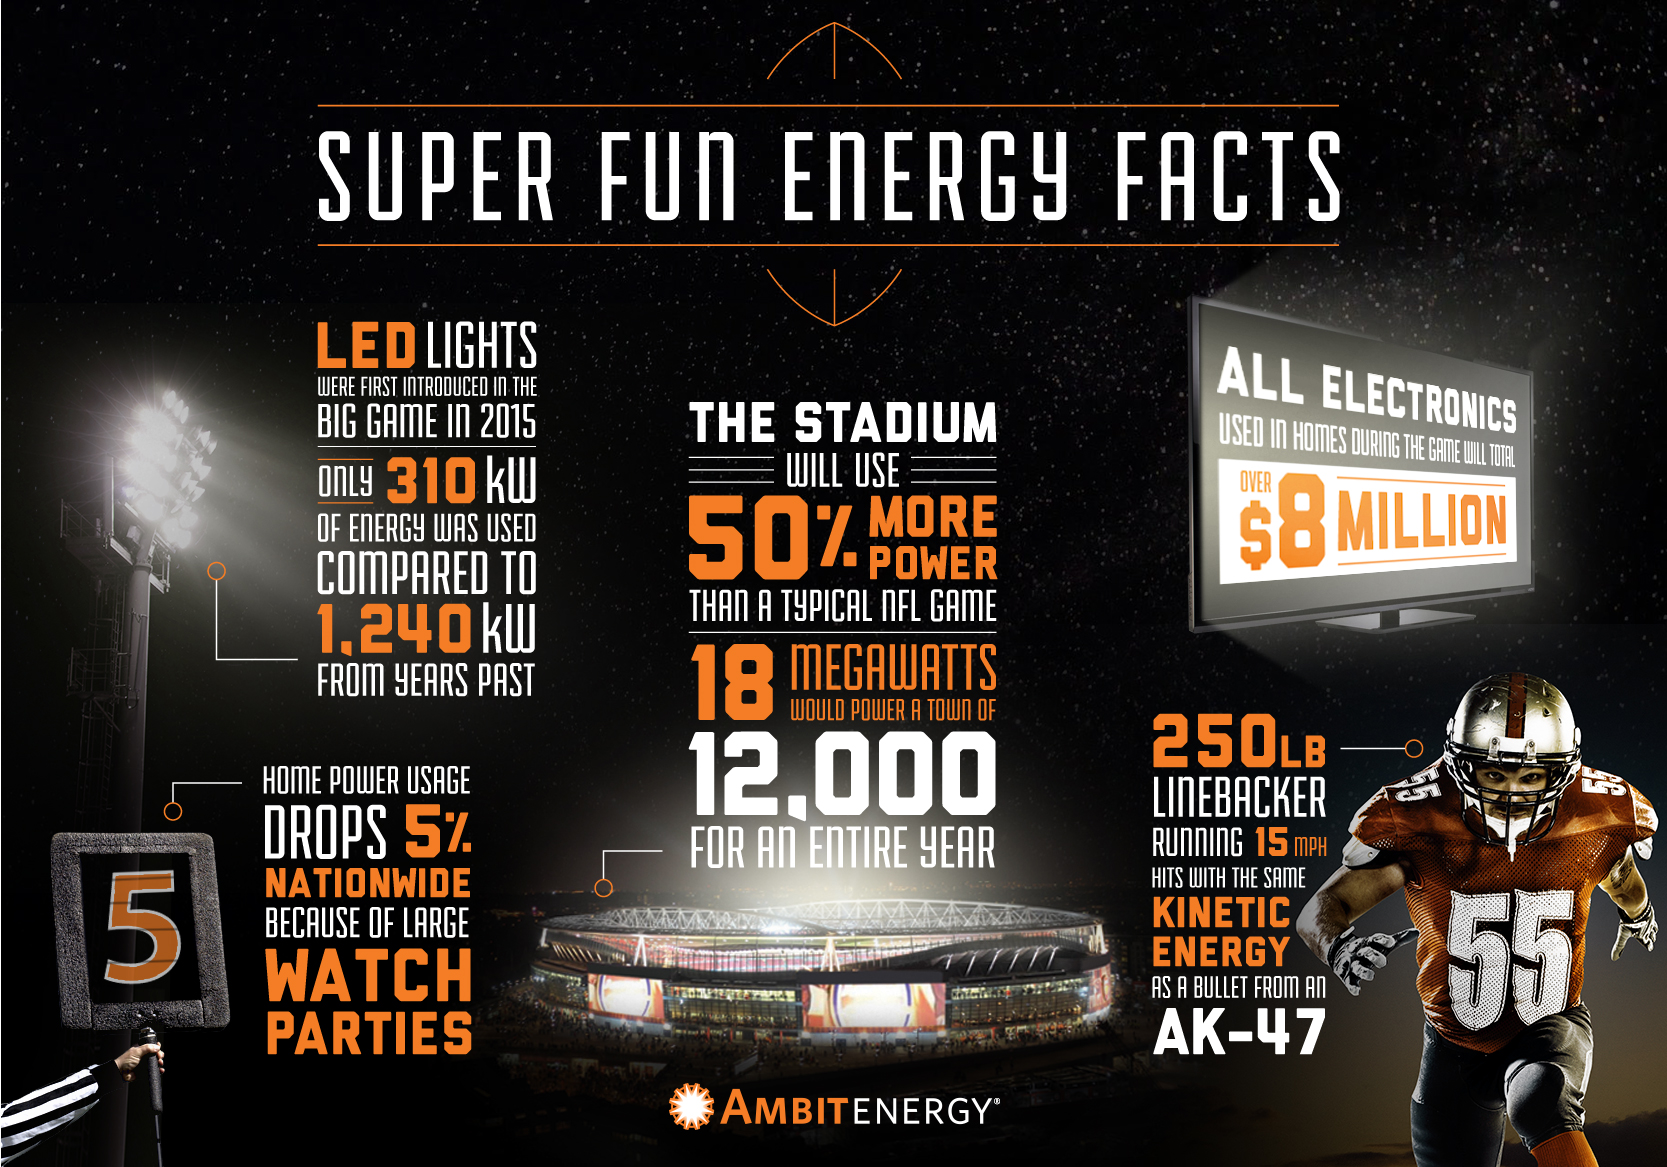 Infographic: Super Energy Facts: Biggest Football Game of Year | Ambit Energy